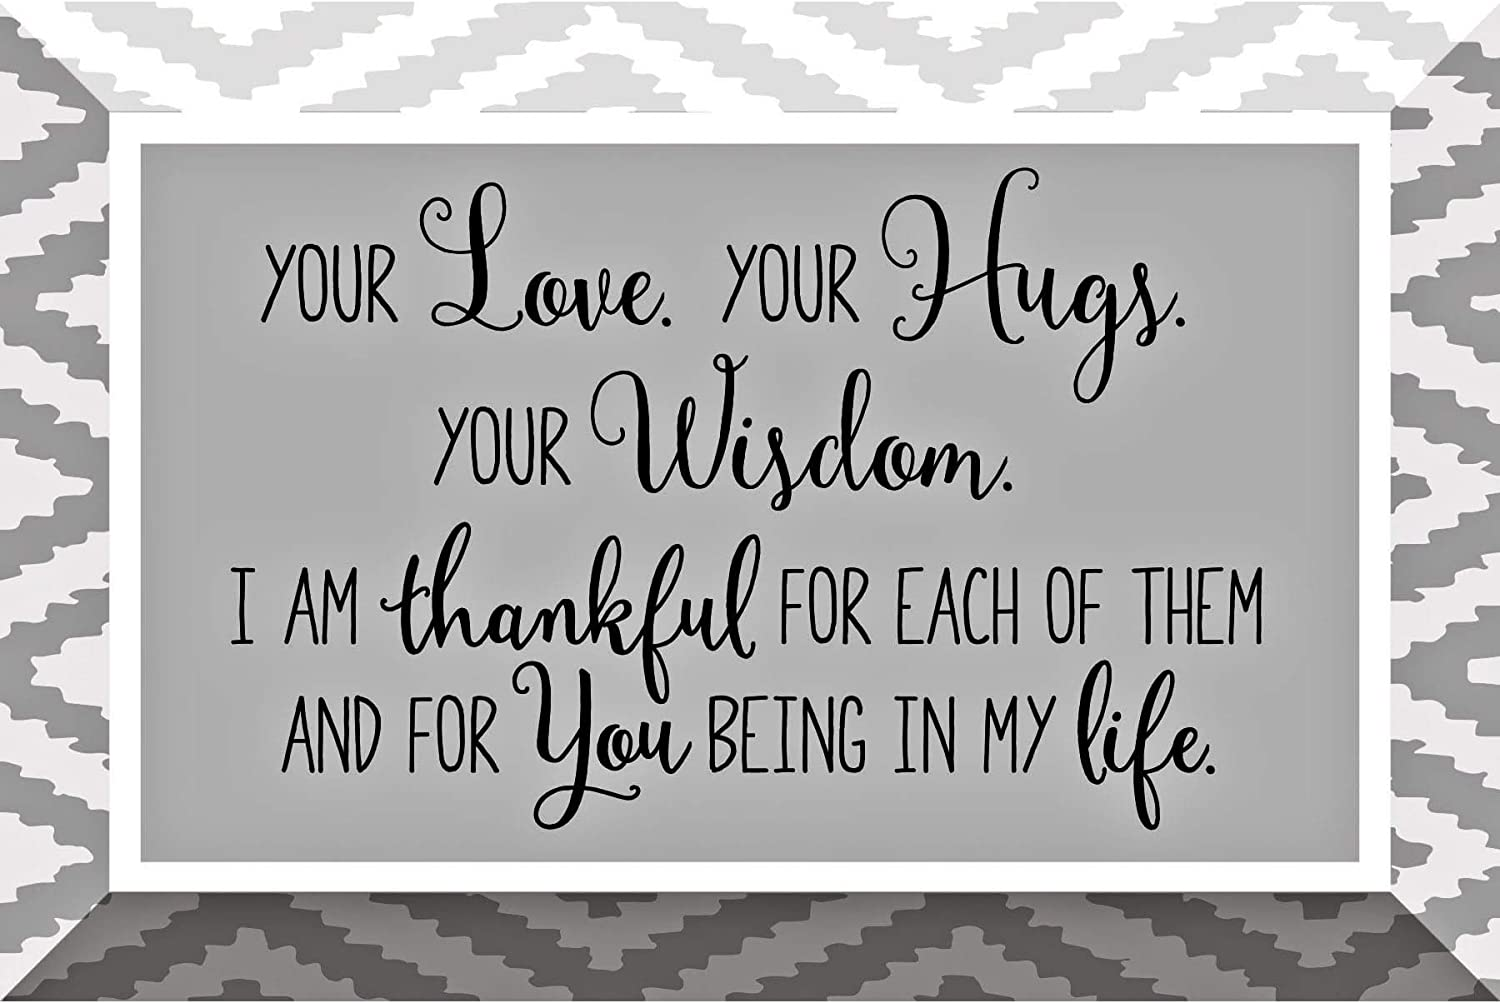 Love Hugs Glass Plaque with Inspiring Quotes 4x6 - Classic Horizontal Tabletop Decoration | Easel Back | Your Love. Your Hugs. Your Wisdom. IAM Thankful for Each of Them and for You Being in My Life.